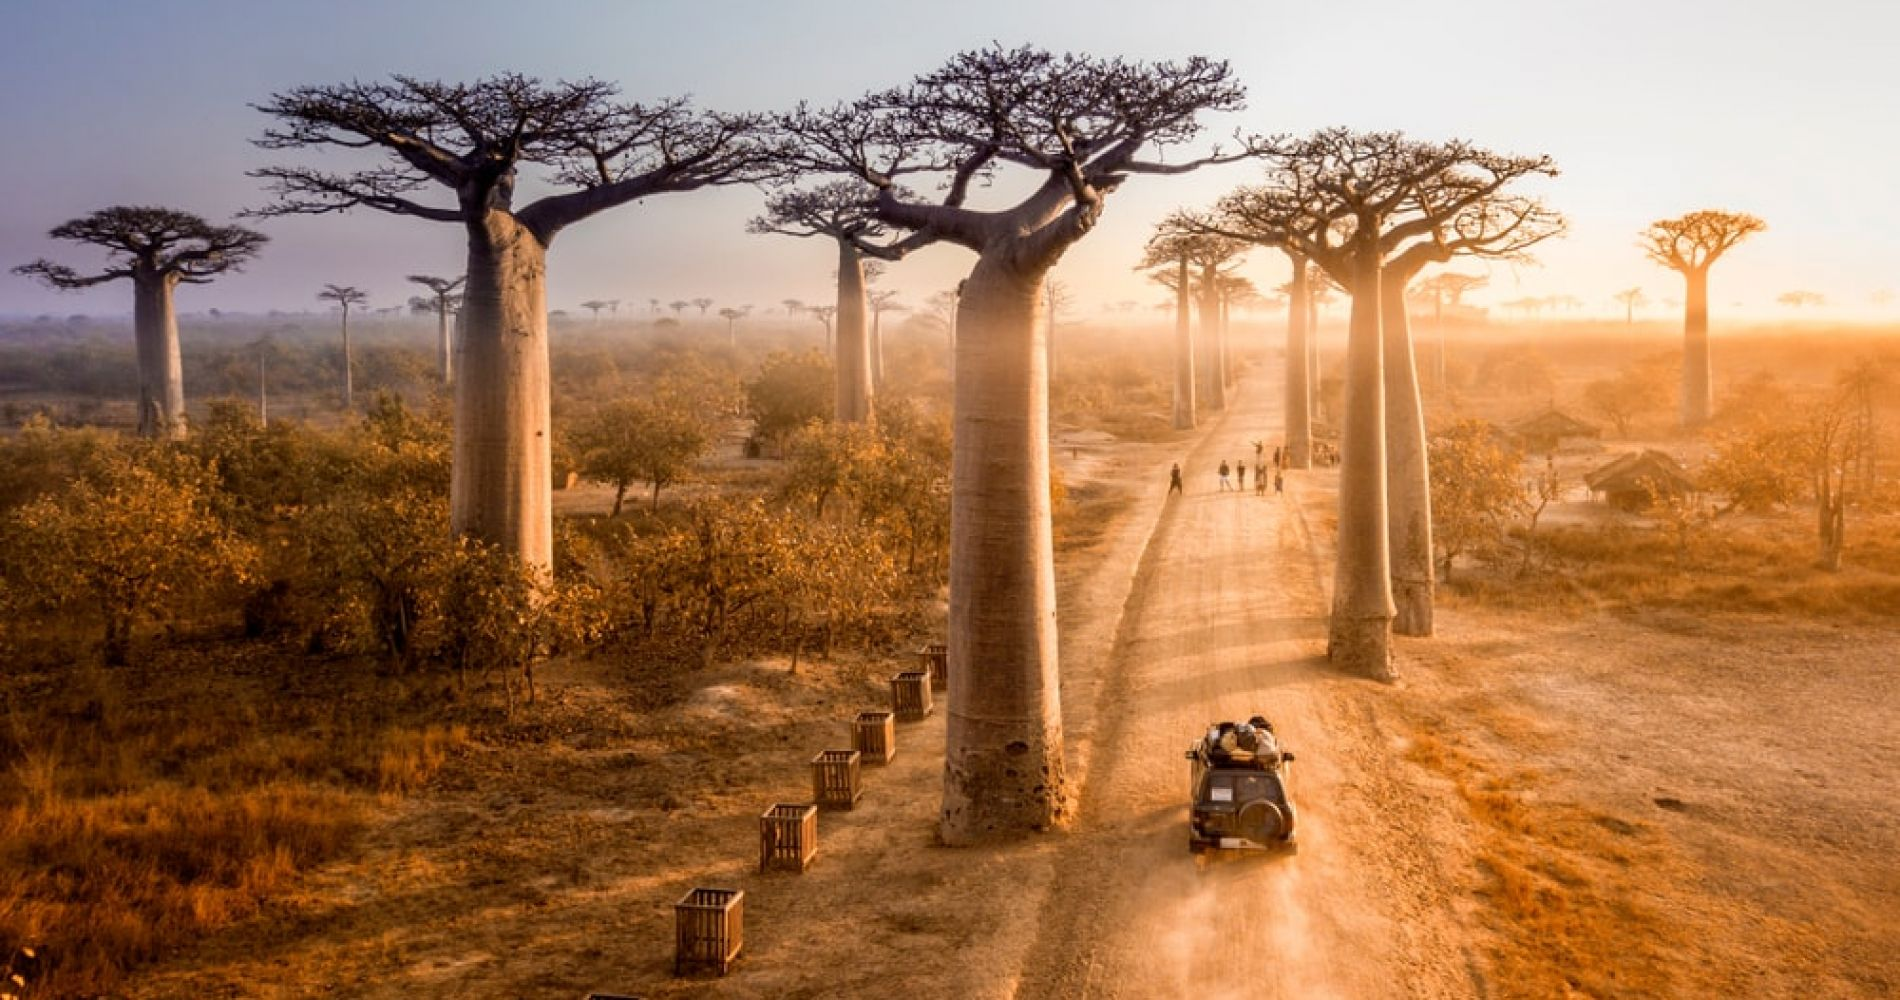 See the Avenue of the Baobabs in Madagascar